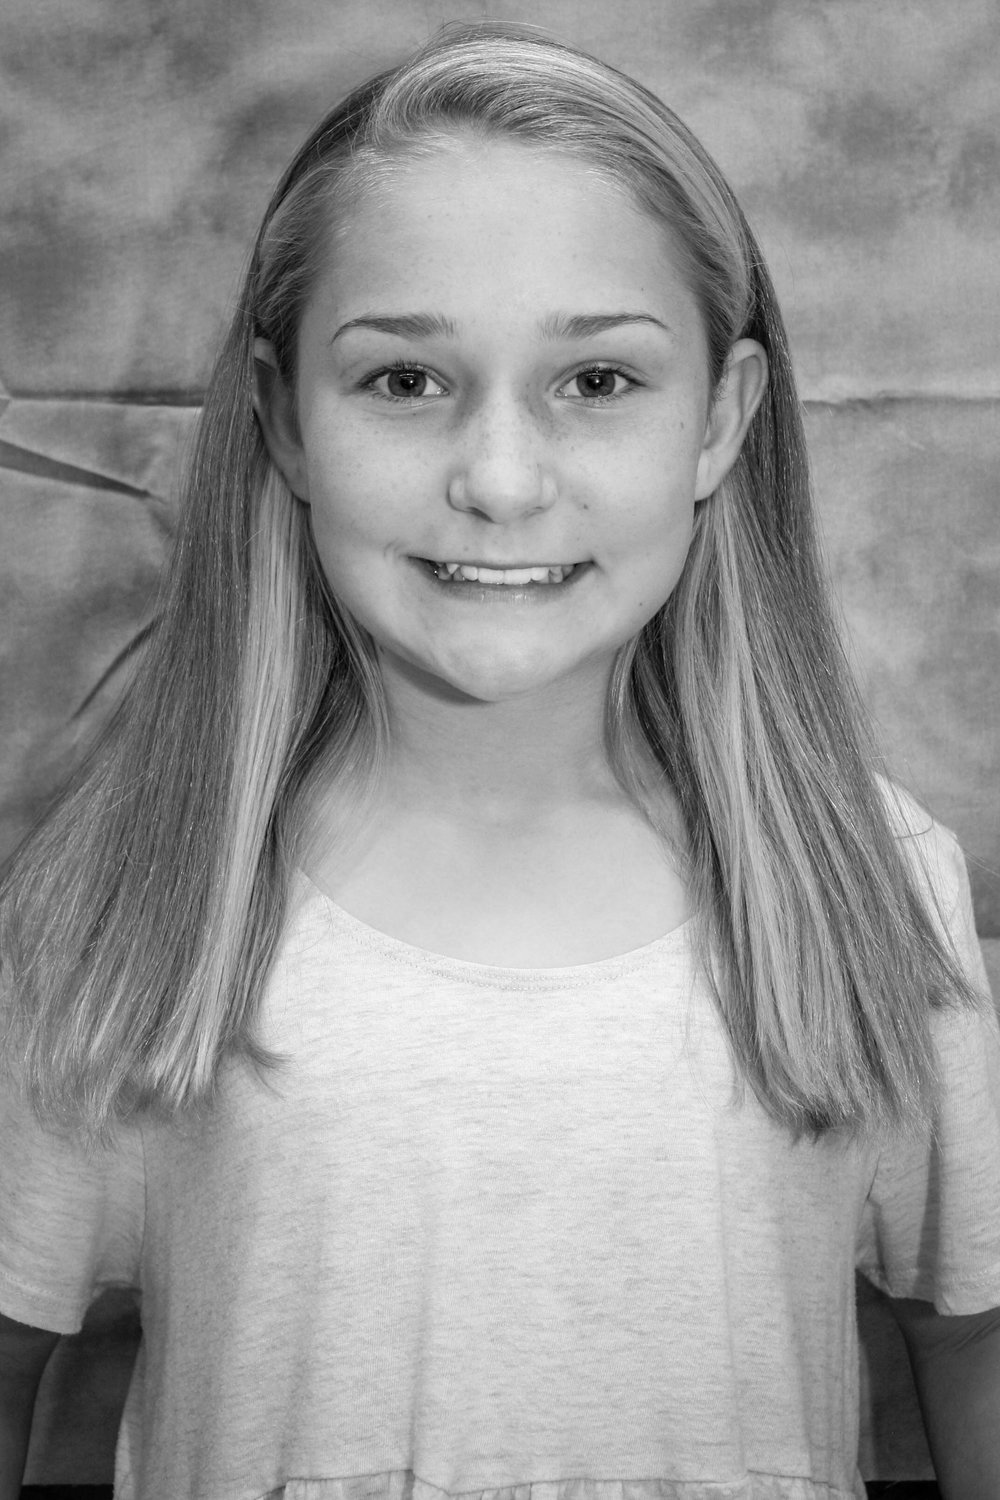 Veruca u/s, Oompa Loompa - Caroline a sixth grade theatre major who is so excited to be in the cast of Willy Wonka! She would like to thank her voice teacher, her parents, and of course, Ms. Starkey and Easter for making it happen.